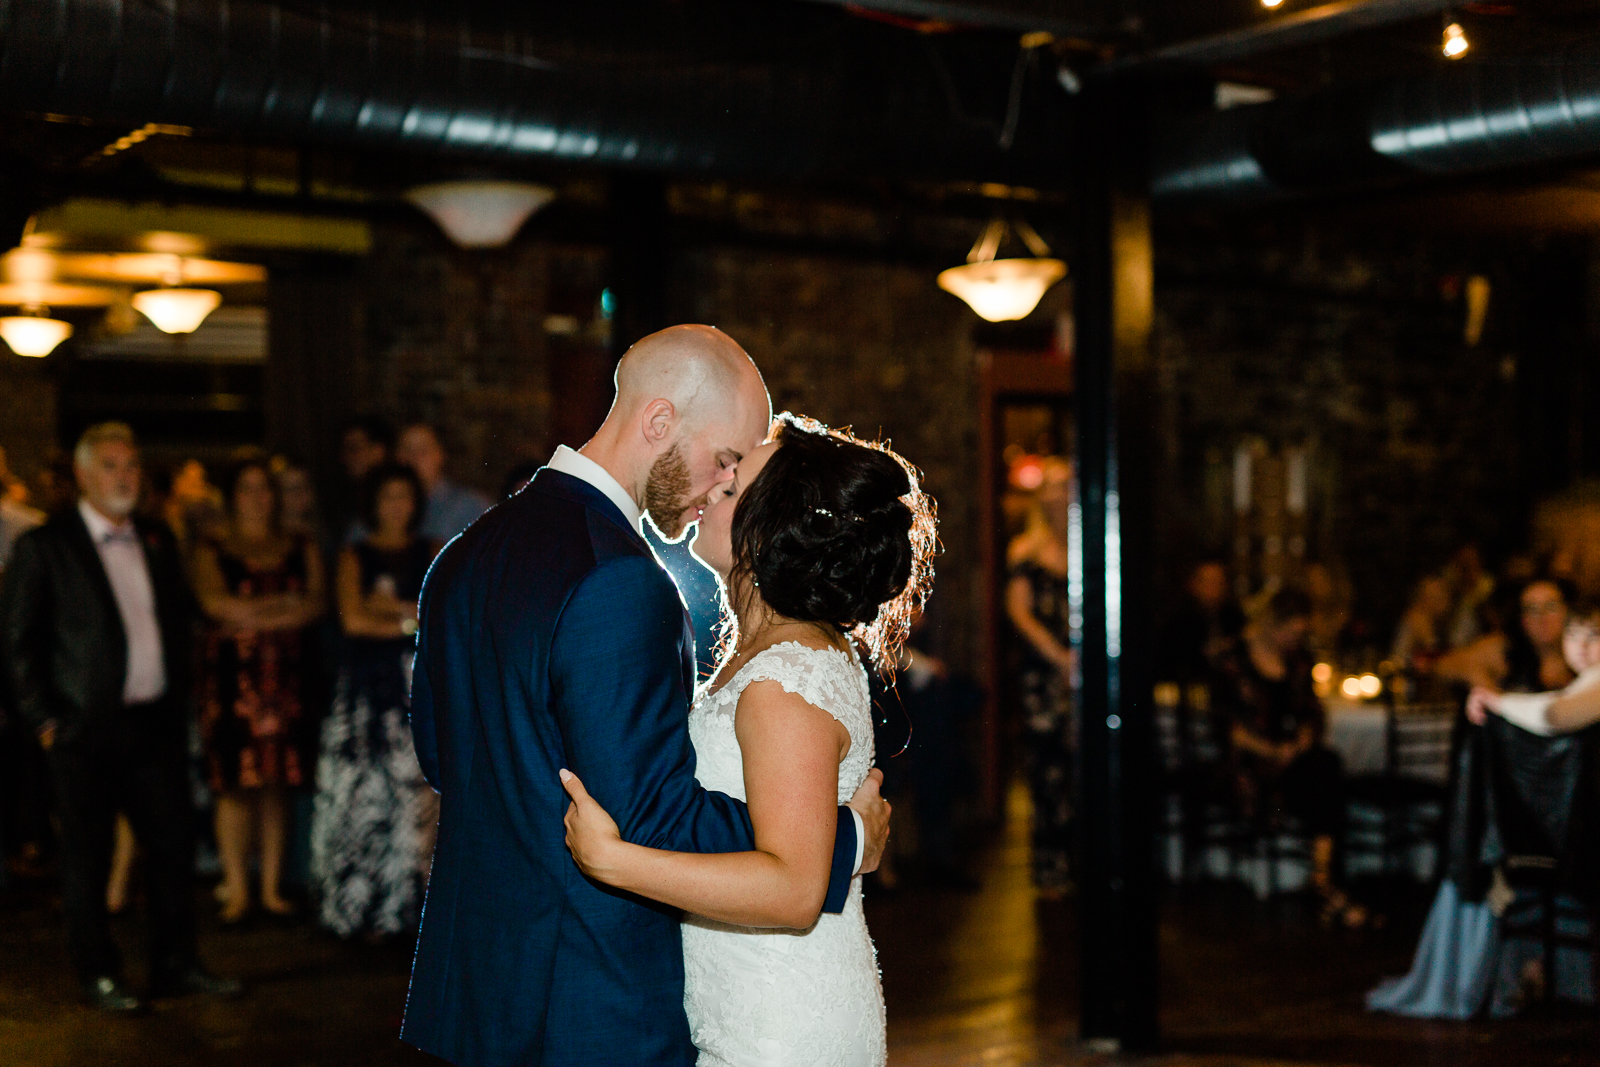 0121st-johns-wedding-photographer-caitlin-adam-yellowbelly.jpg